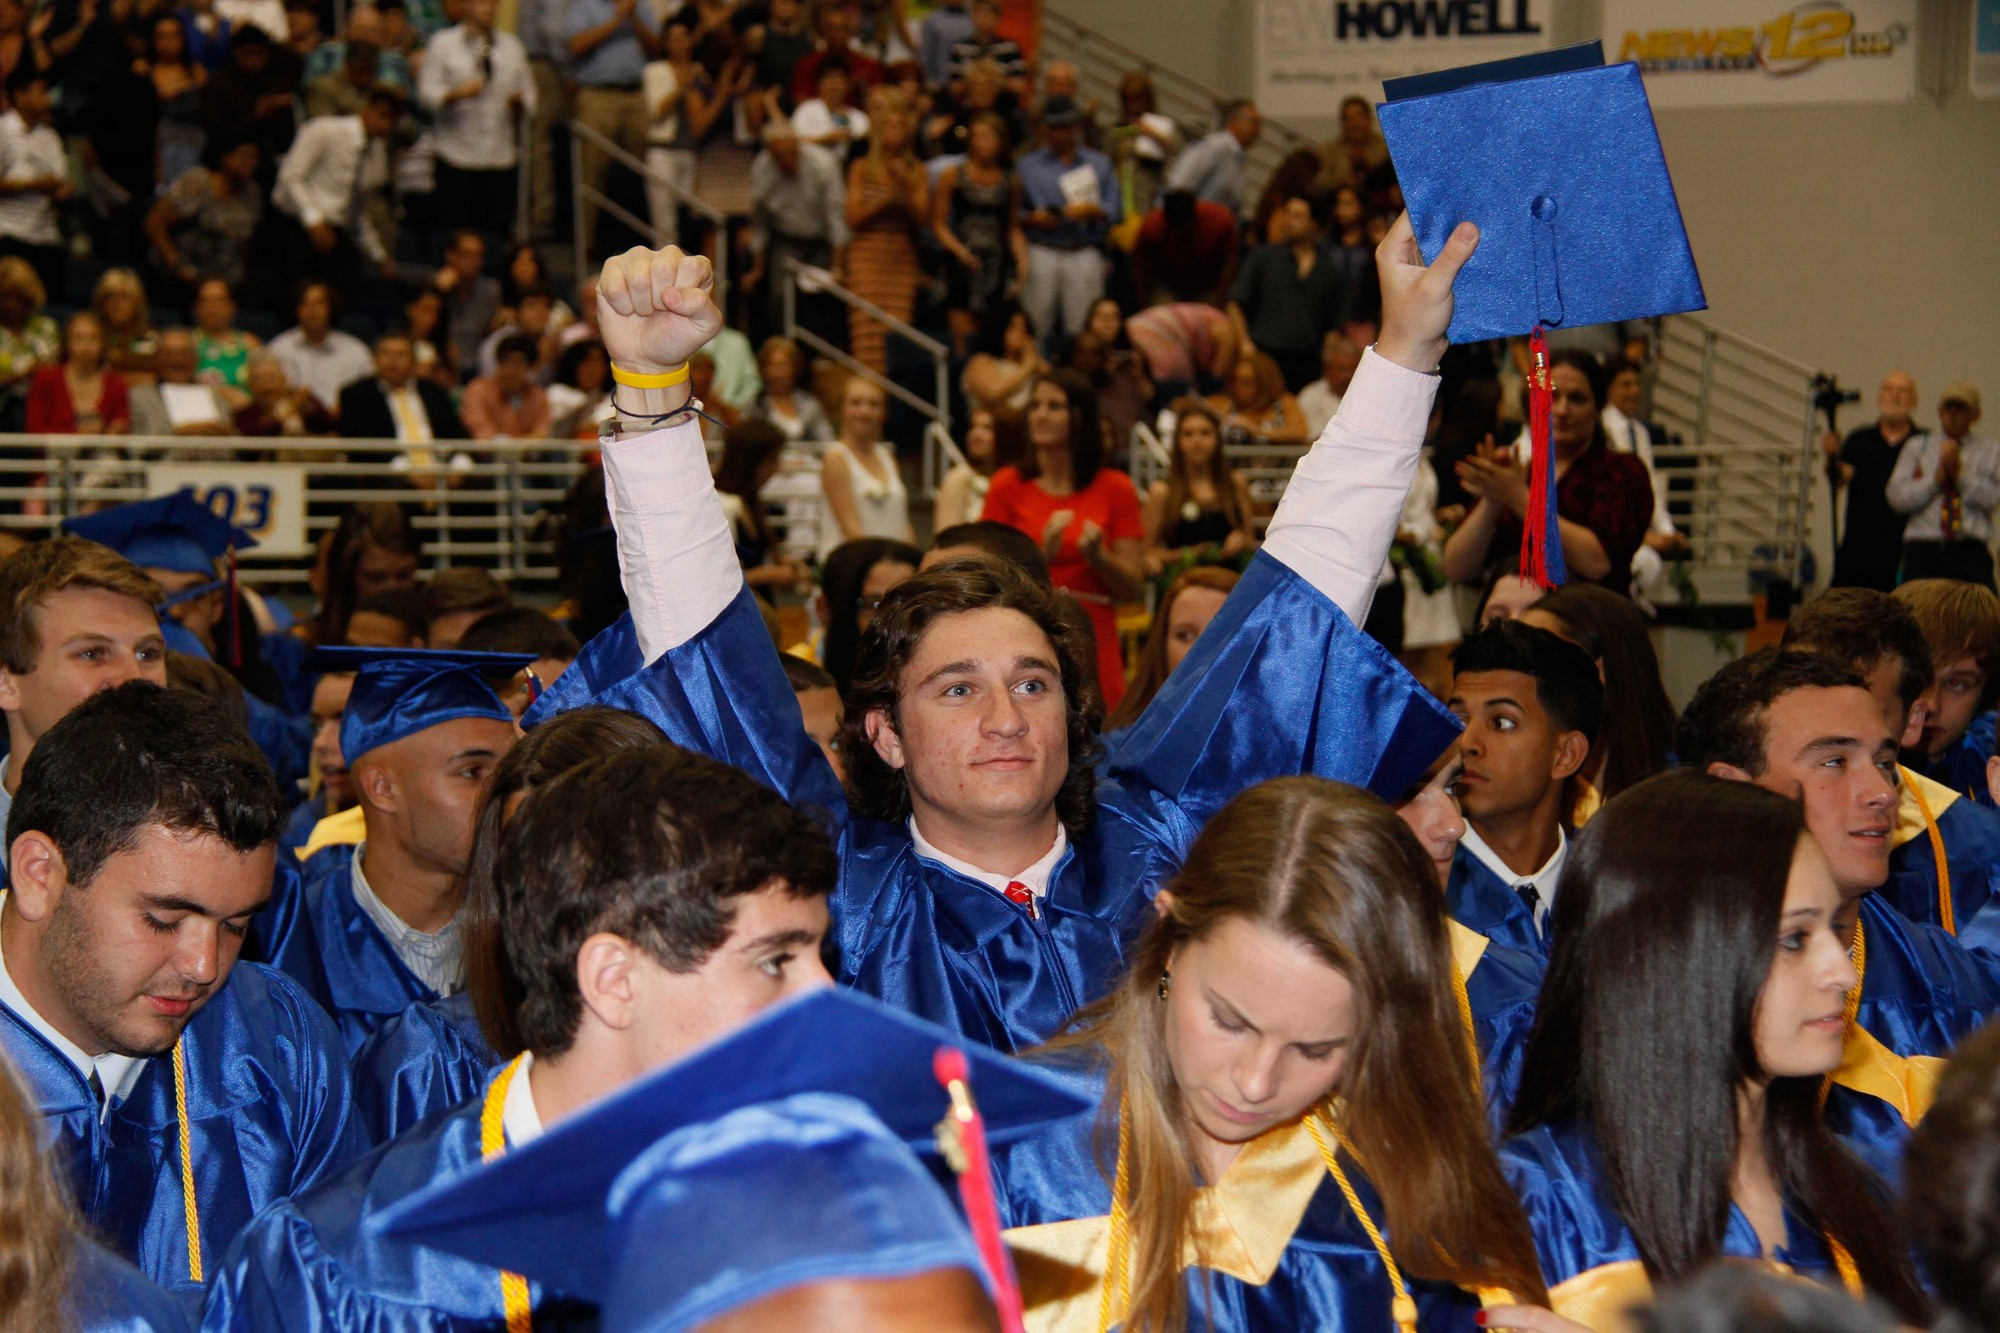 Connor Daly celebrated his graduation from South Side High School.